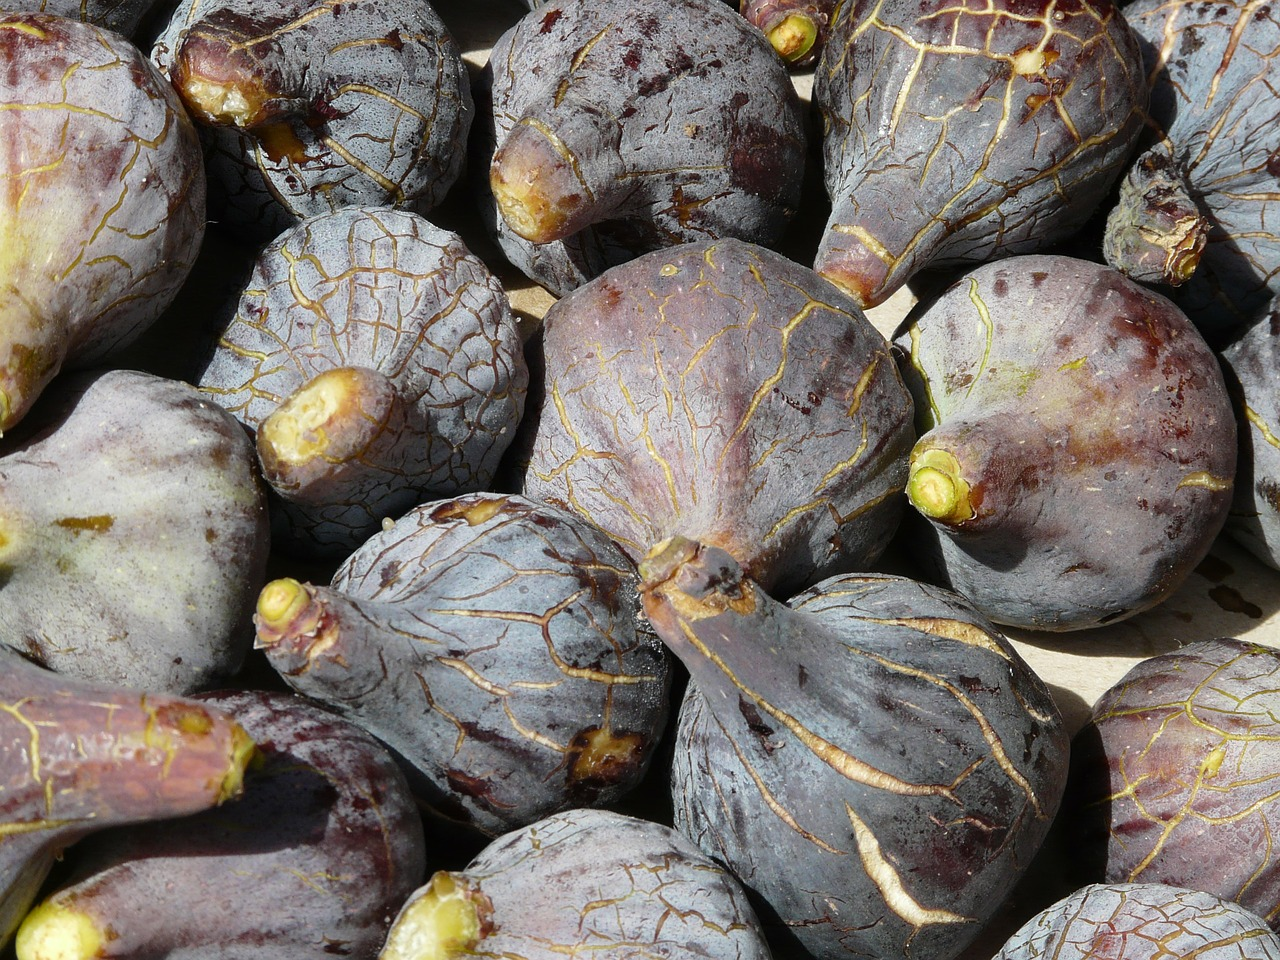 figs fruit market free photo